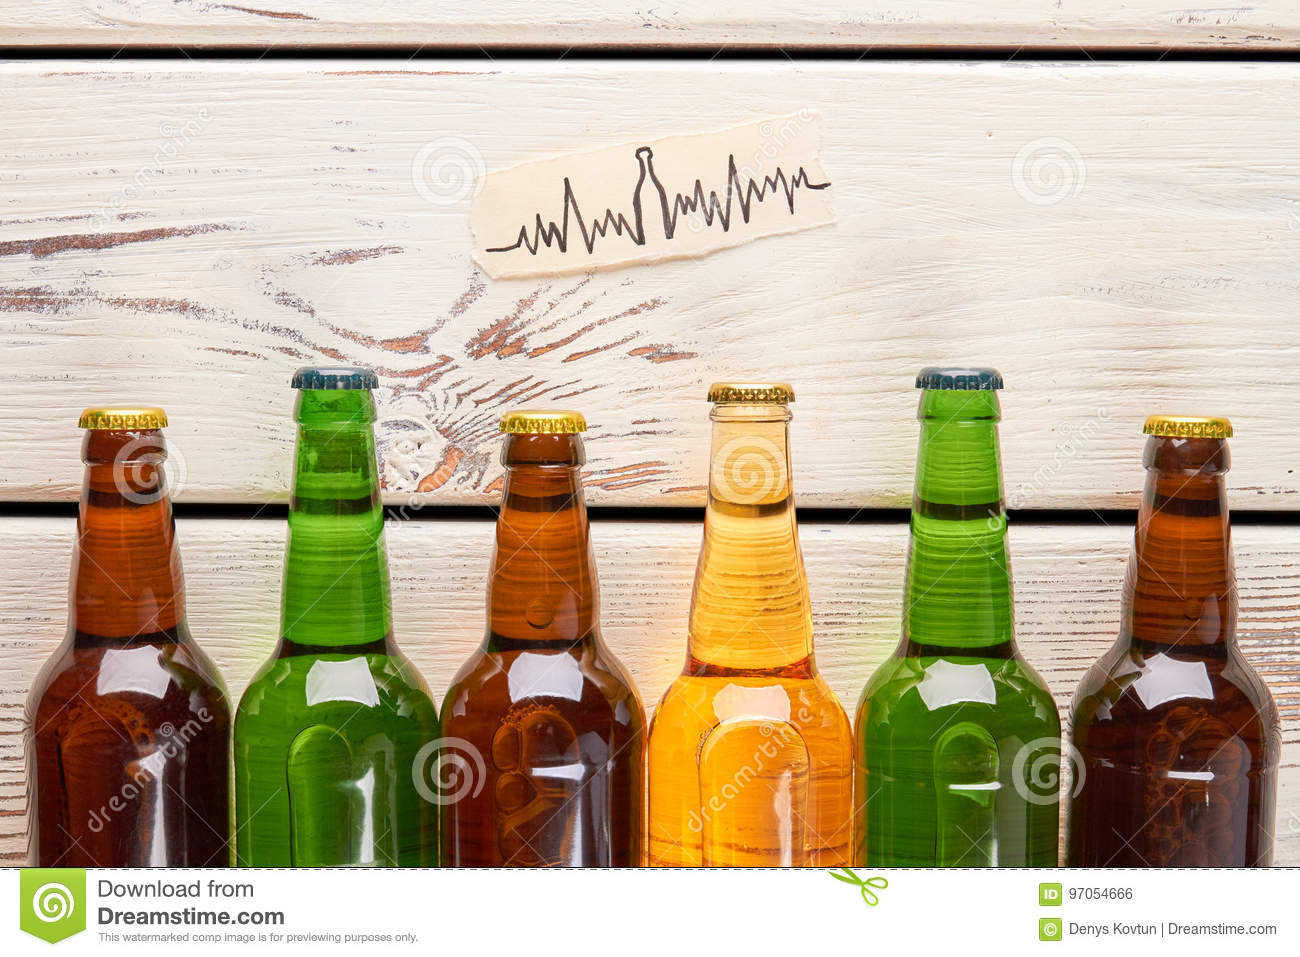 Heart problems from alcohol usage.